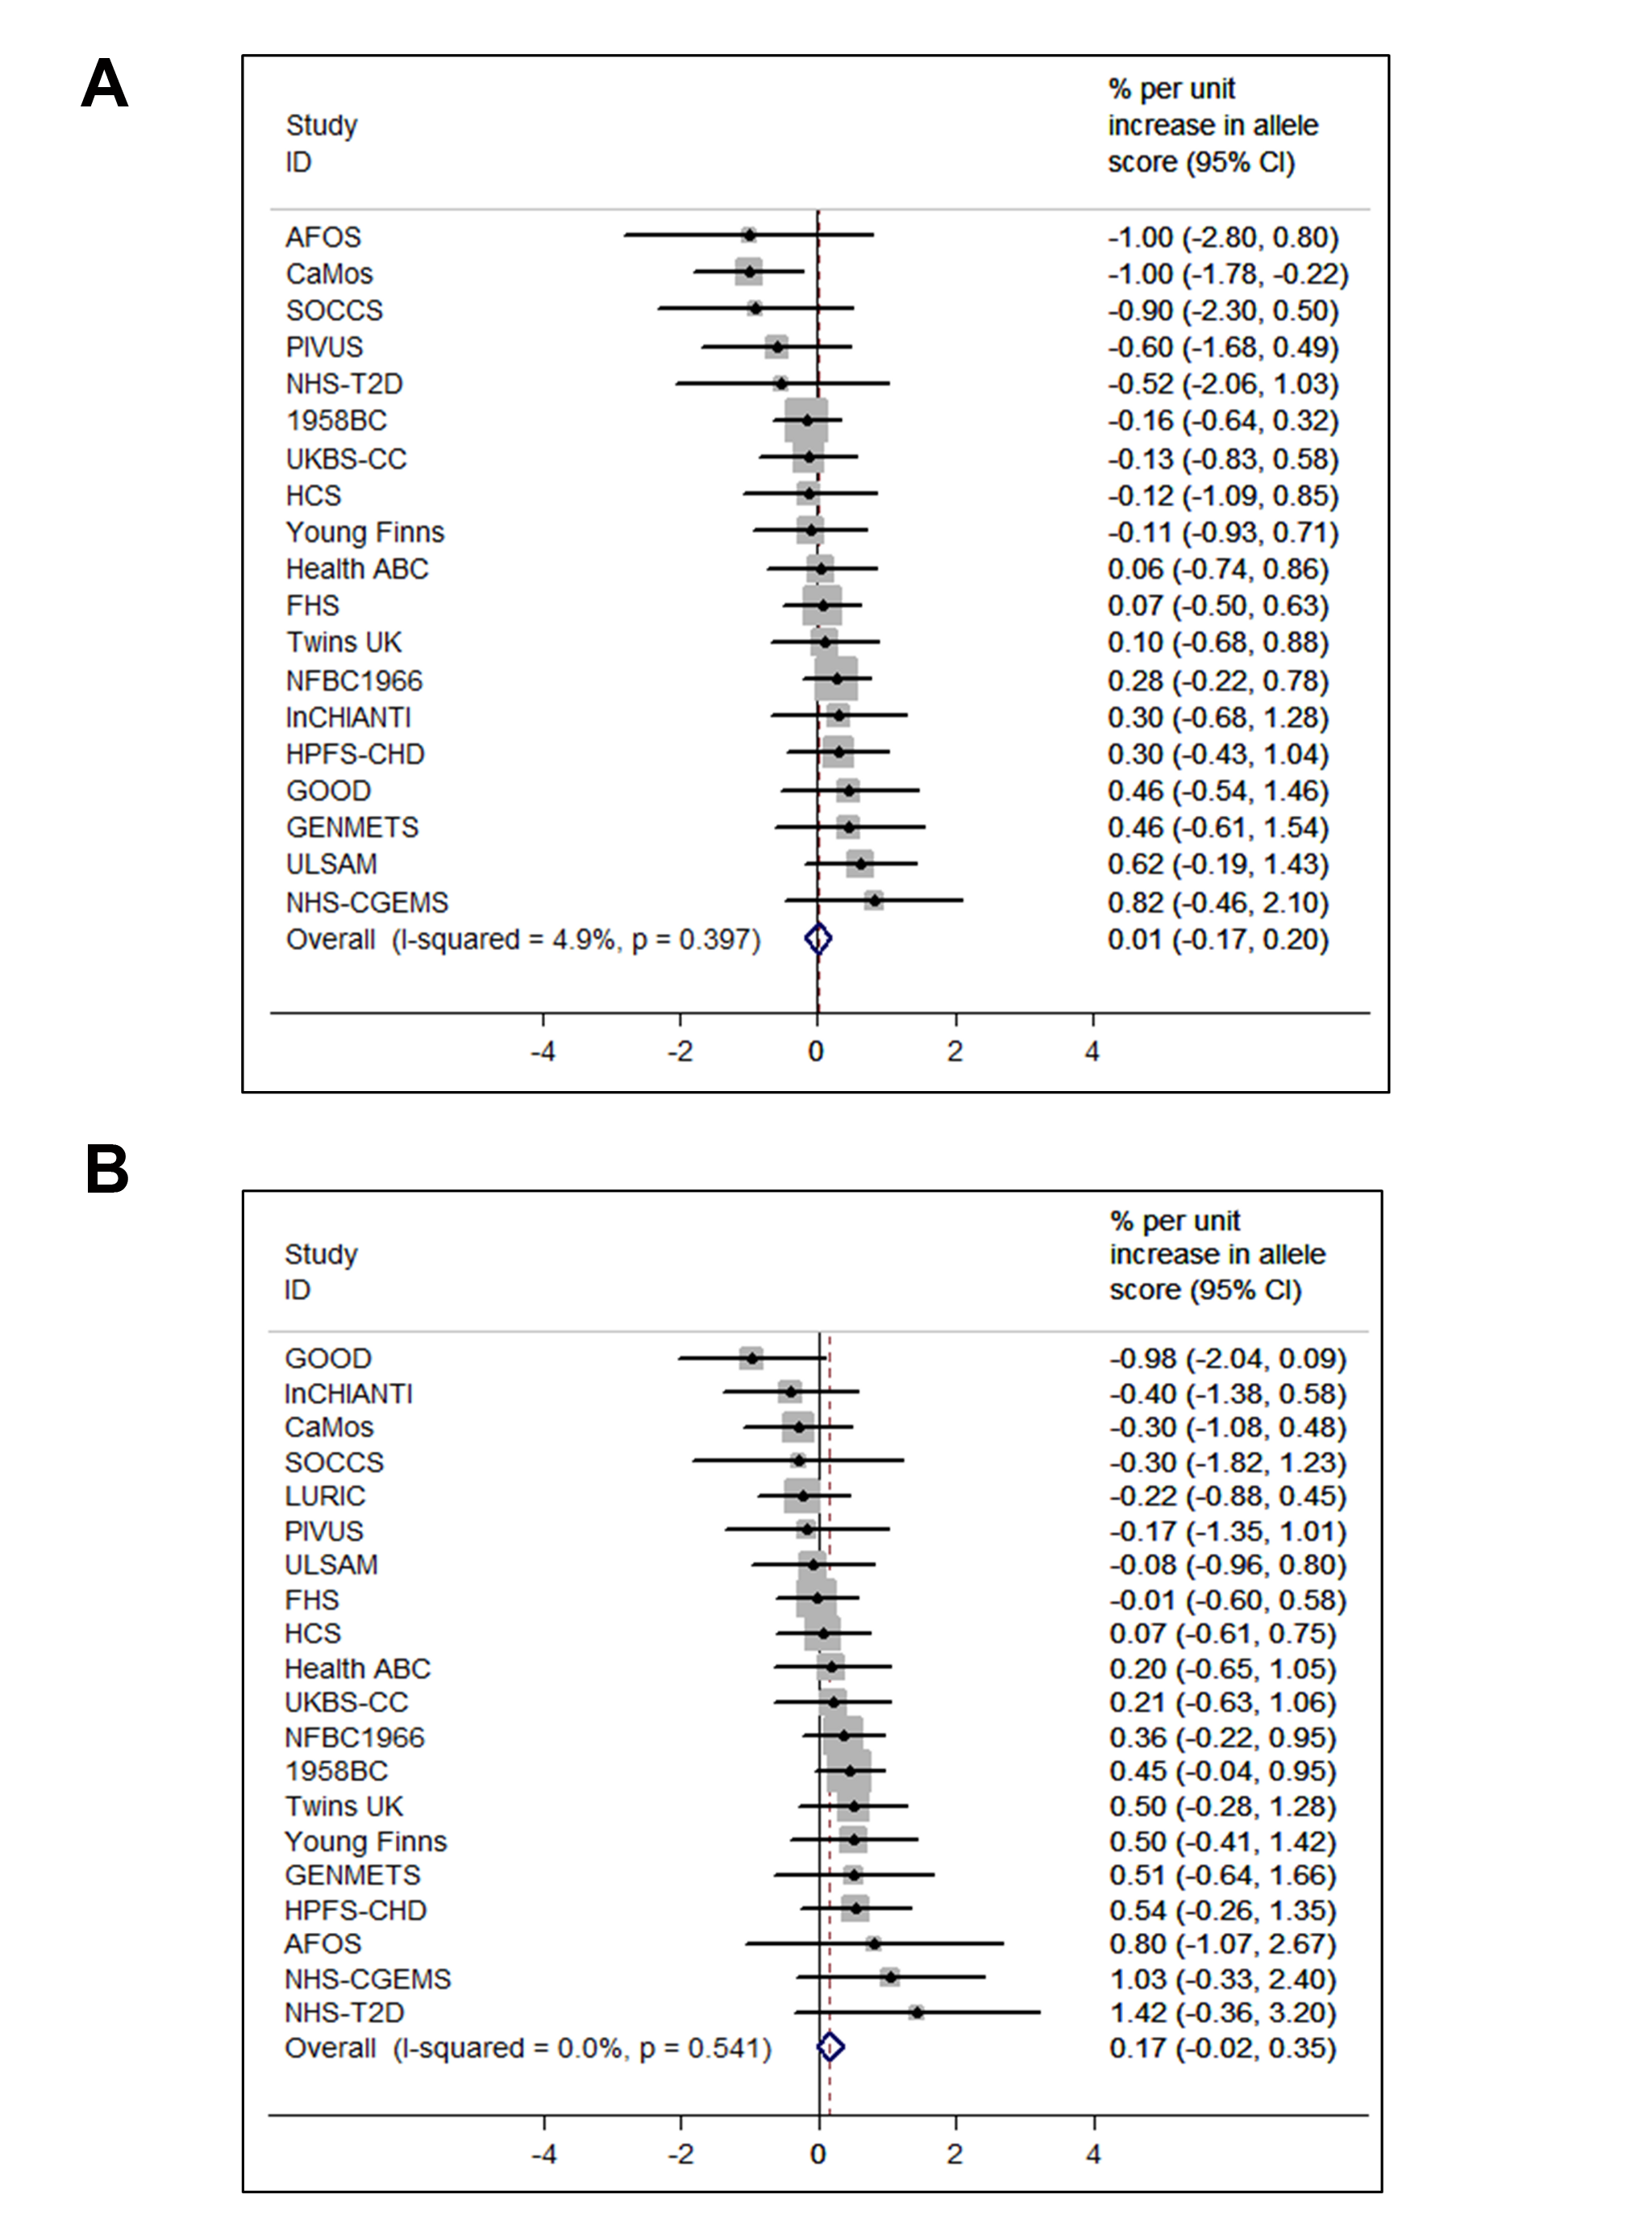 Meta-analysis of the synthesis allele score association with BMI (A) (<i>n</i>=36,553) and the metabolism allele score association with BMI (B) (<i>n</i>=40,367).